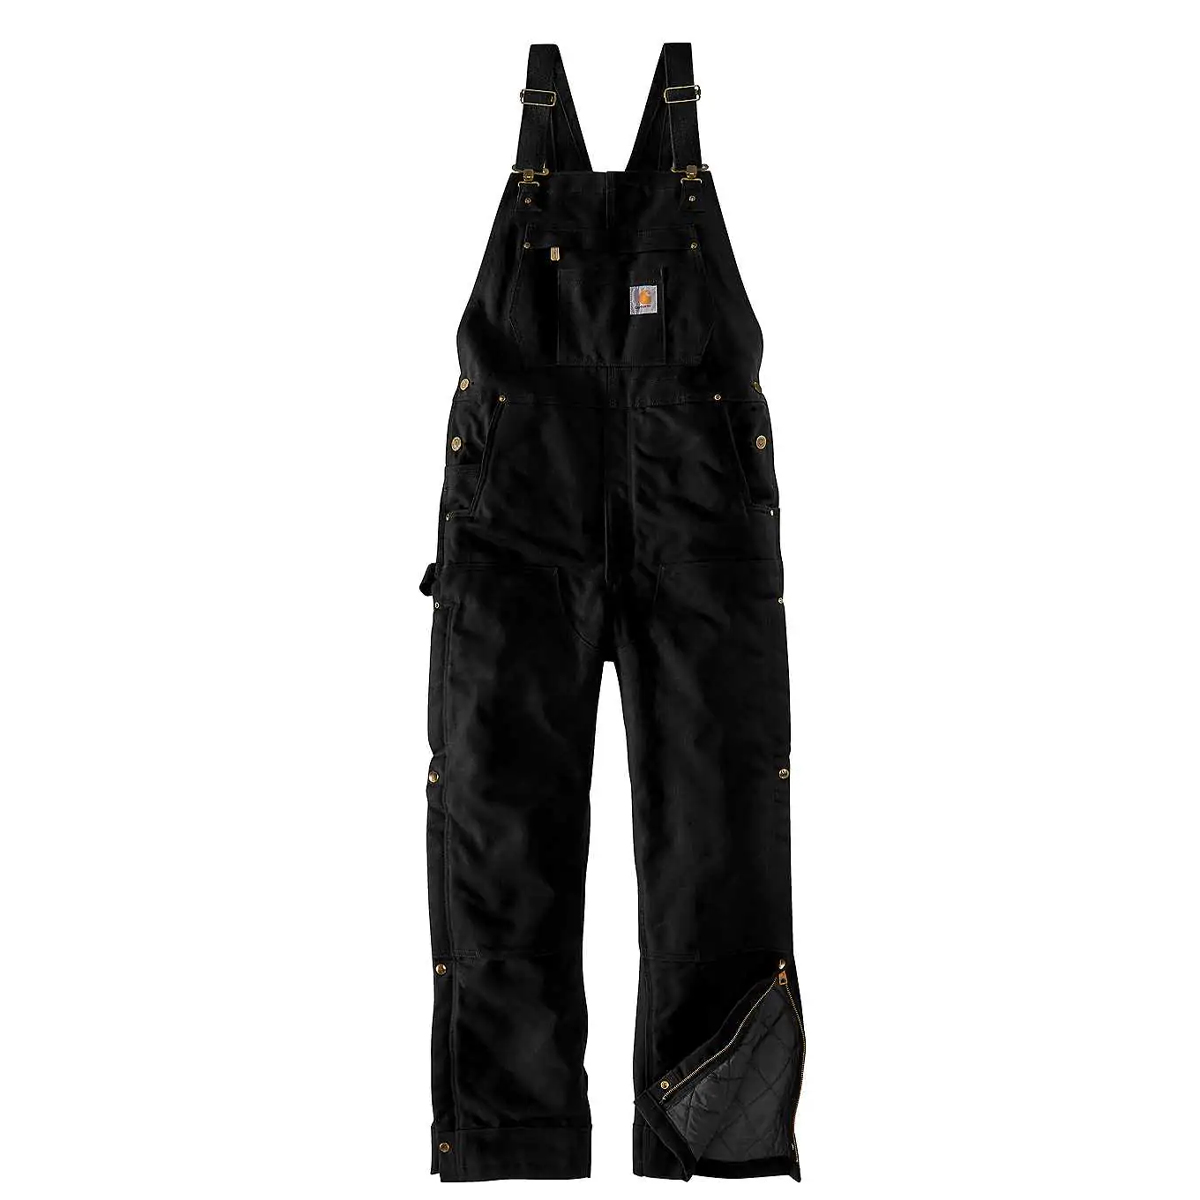 Men's Big Loose Fit Firm Duck Insulated Bib Overall, Black, swatch